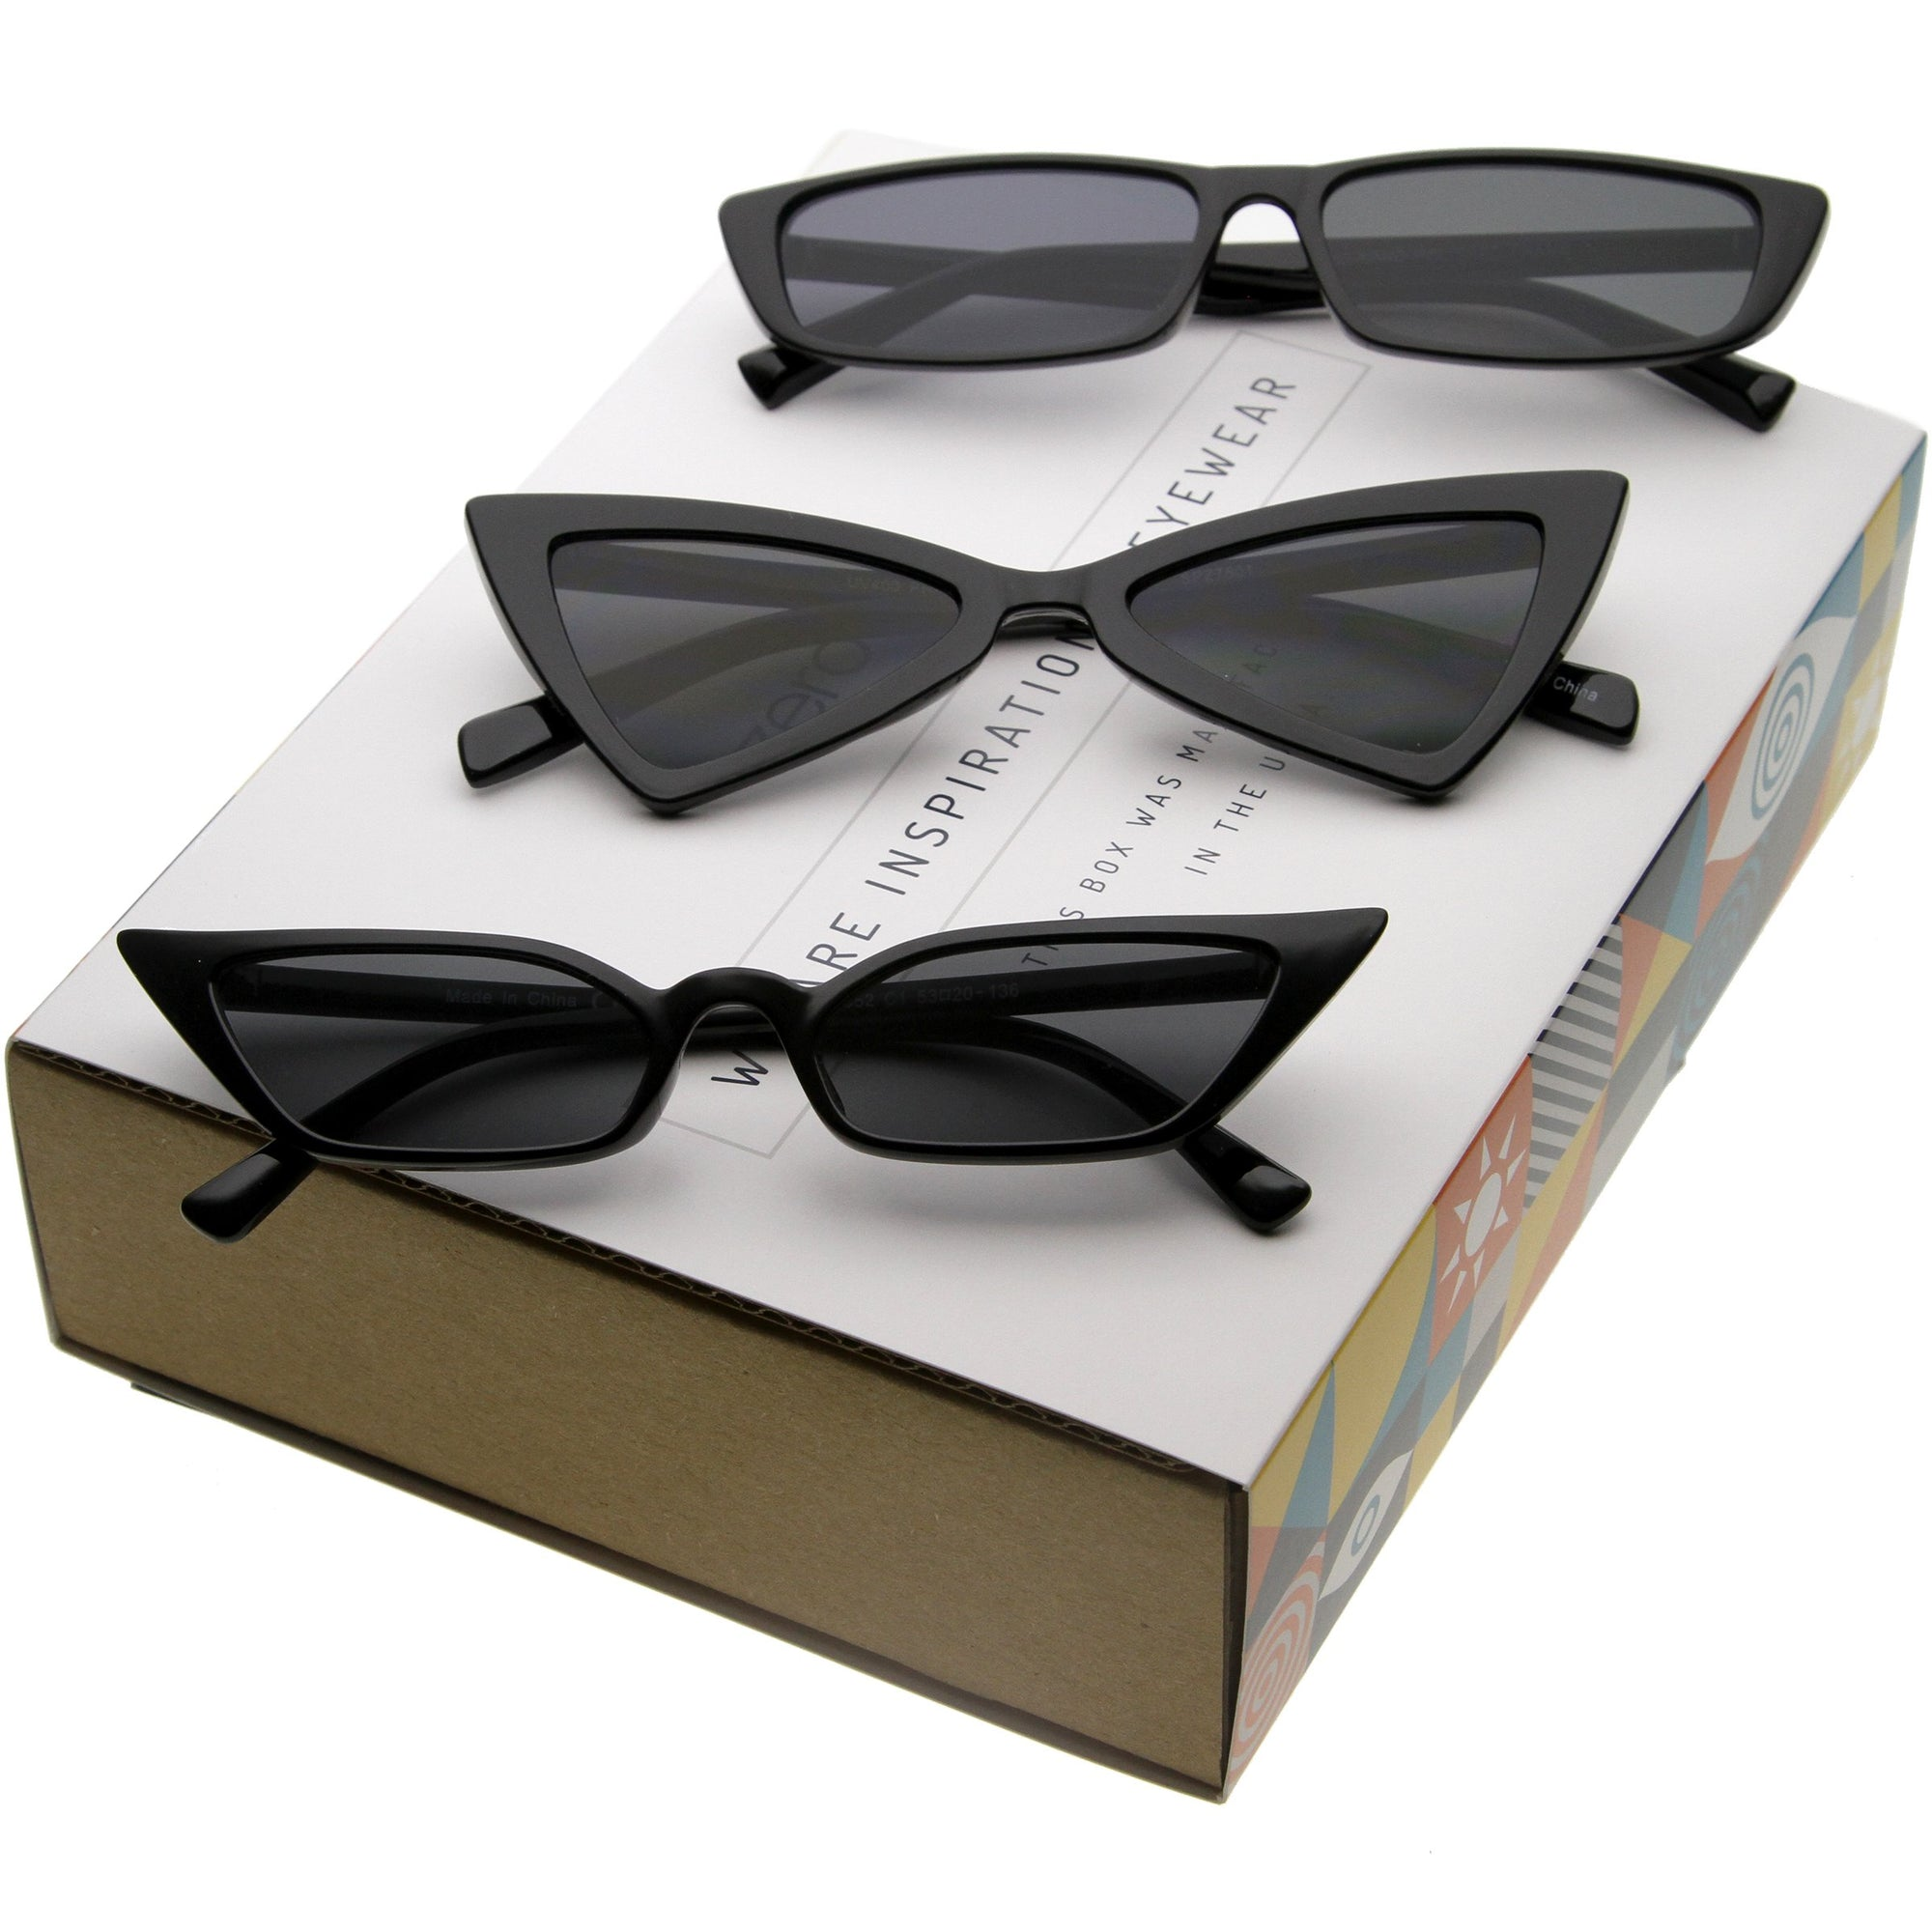 Women's Trending Small 1990's Cat Eye Sunglasses C570 [Promo Box]